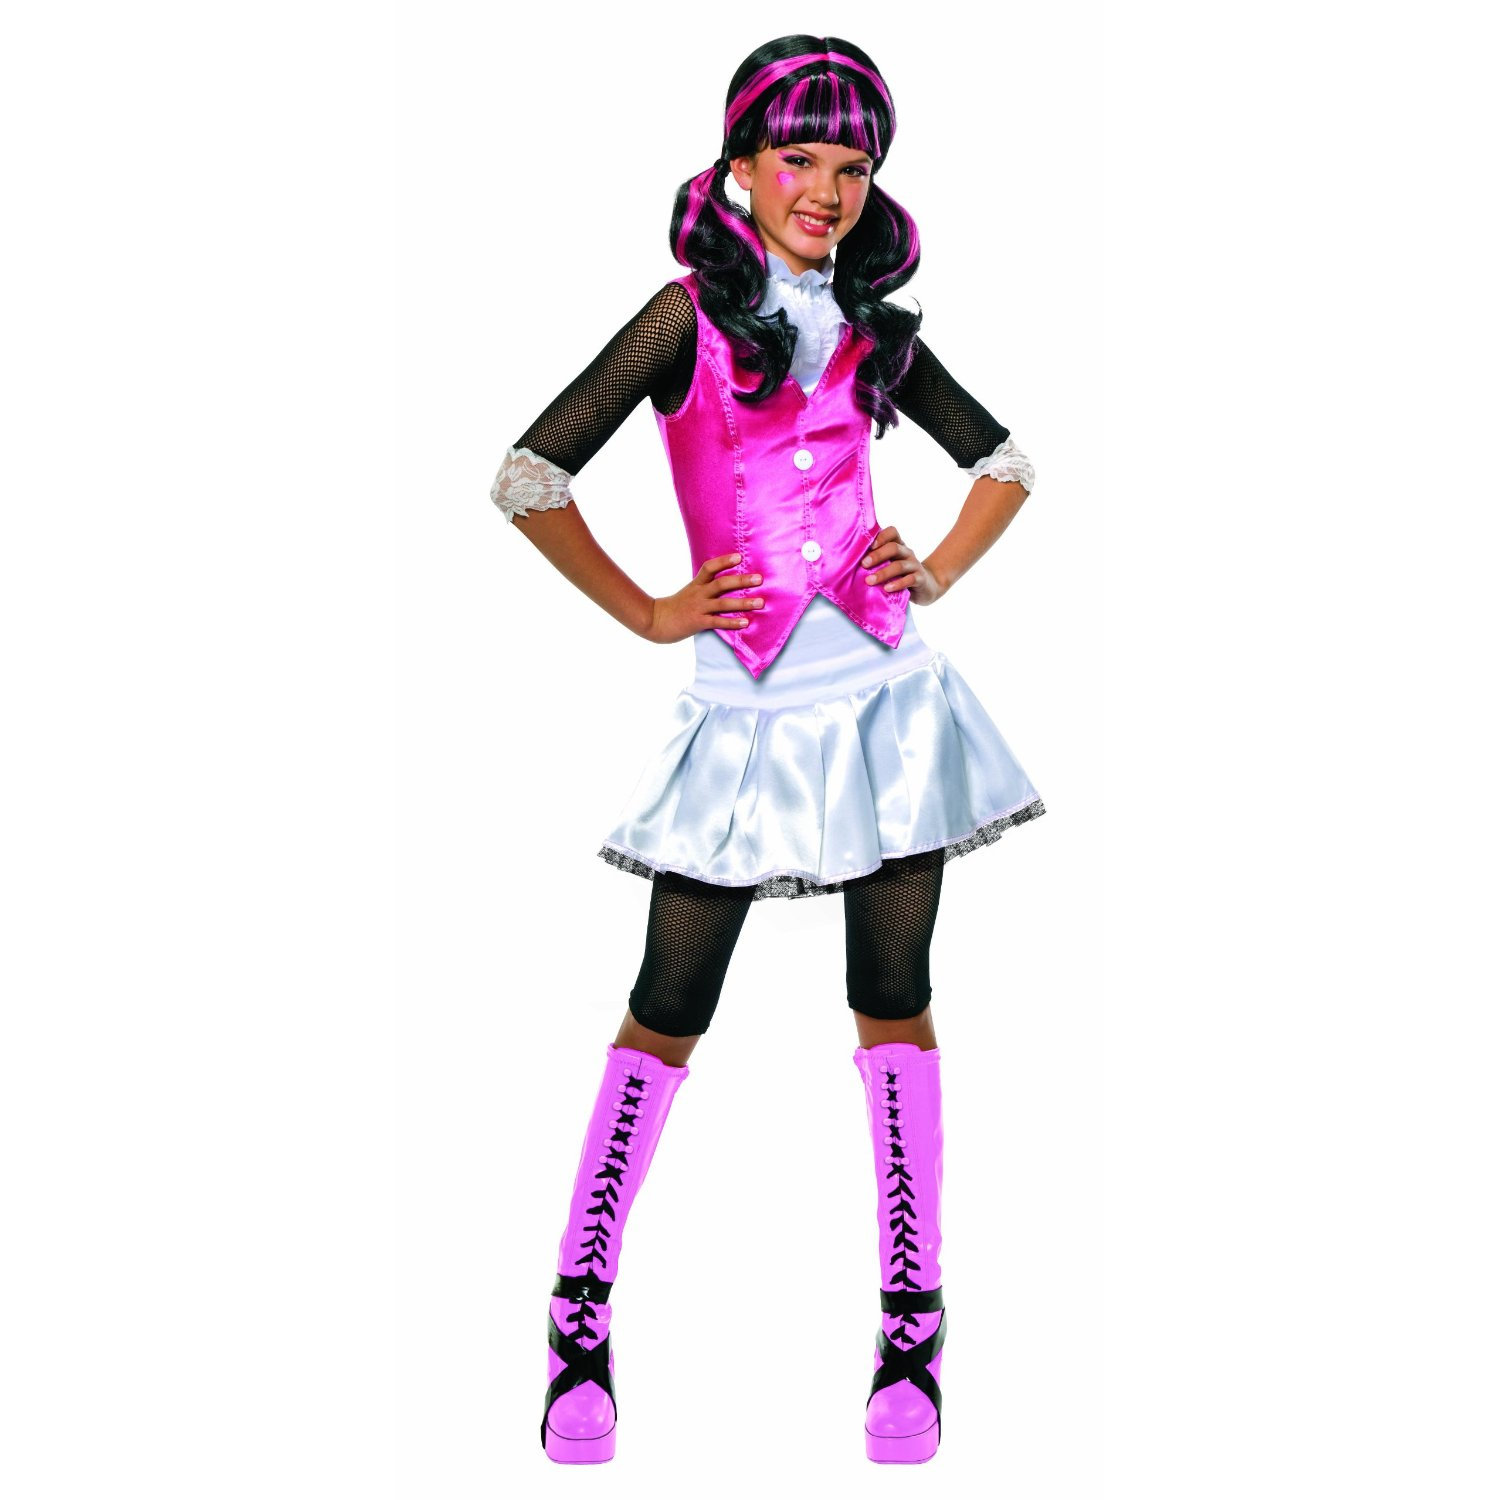 Monster High Draculaura costume 884787